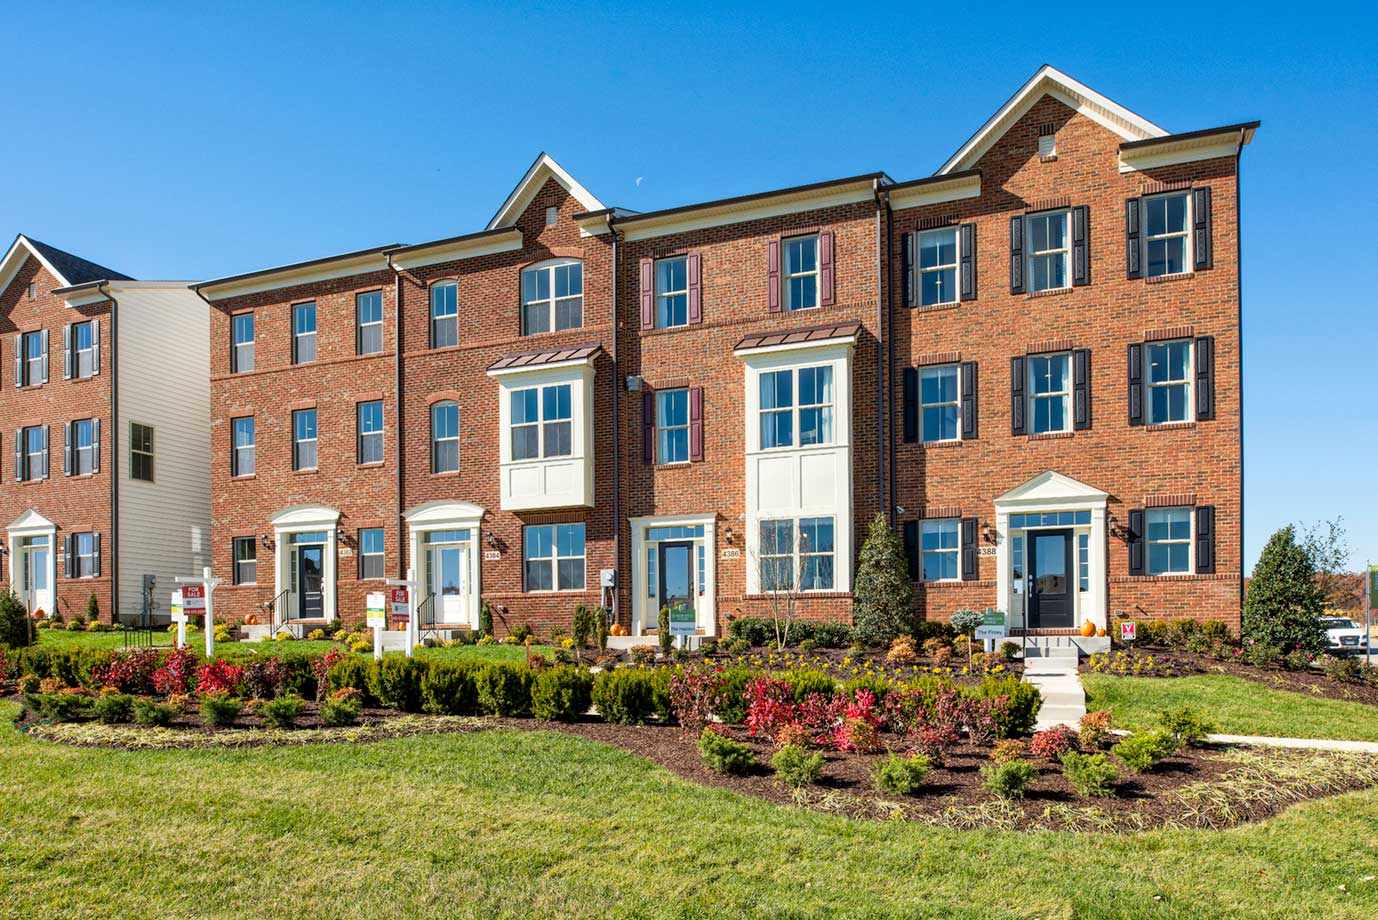 New Construction Townhomes in Frederick MD